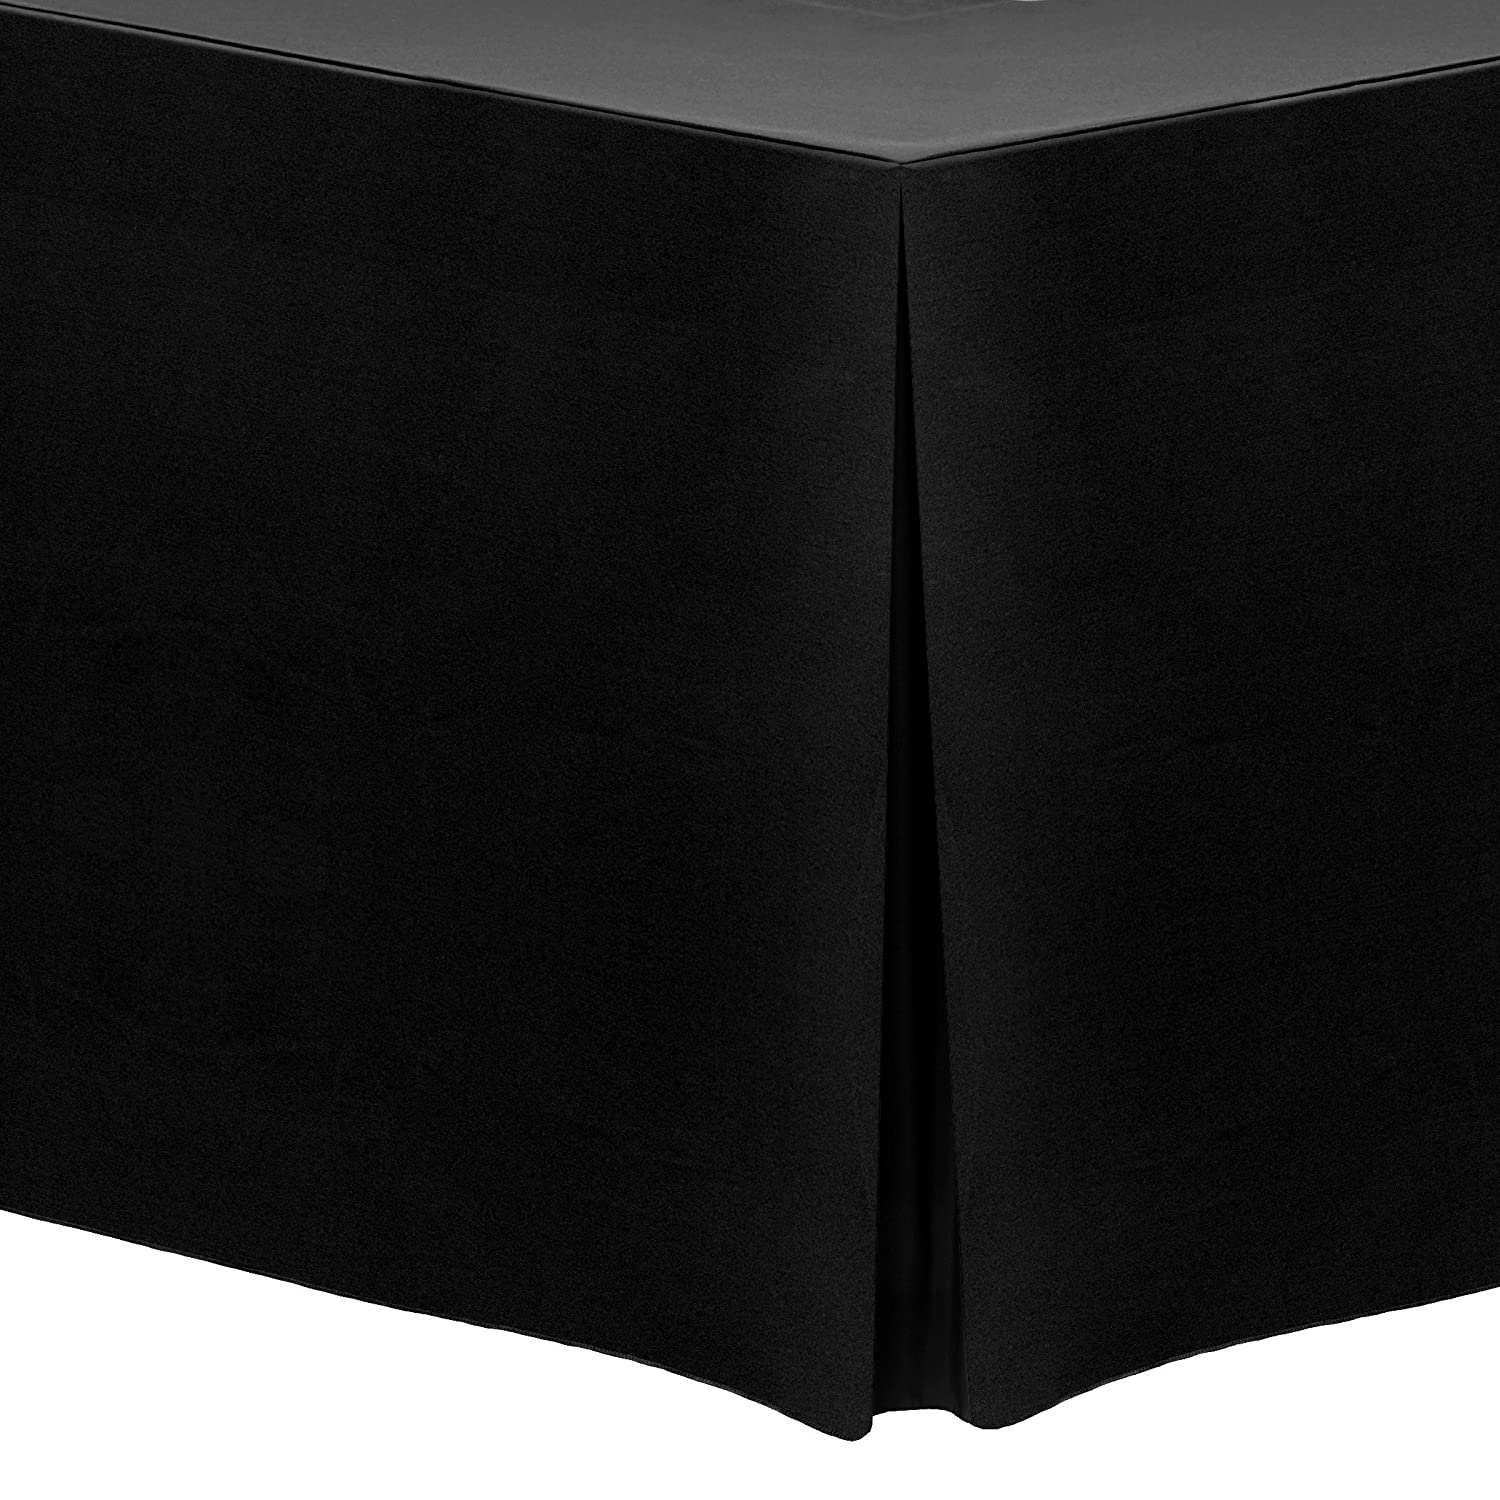 "Ultimate Textile 4 ft. Fitted Polyester Tablecloth - Fits 24 x 48-Inch Rectangular Tables - 42"" H, Black"